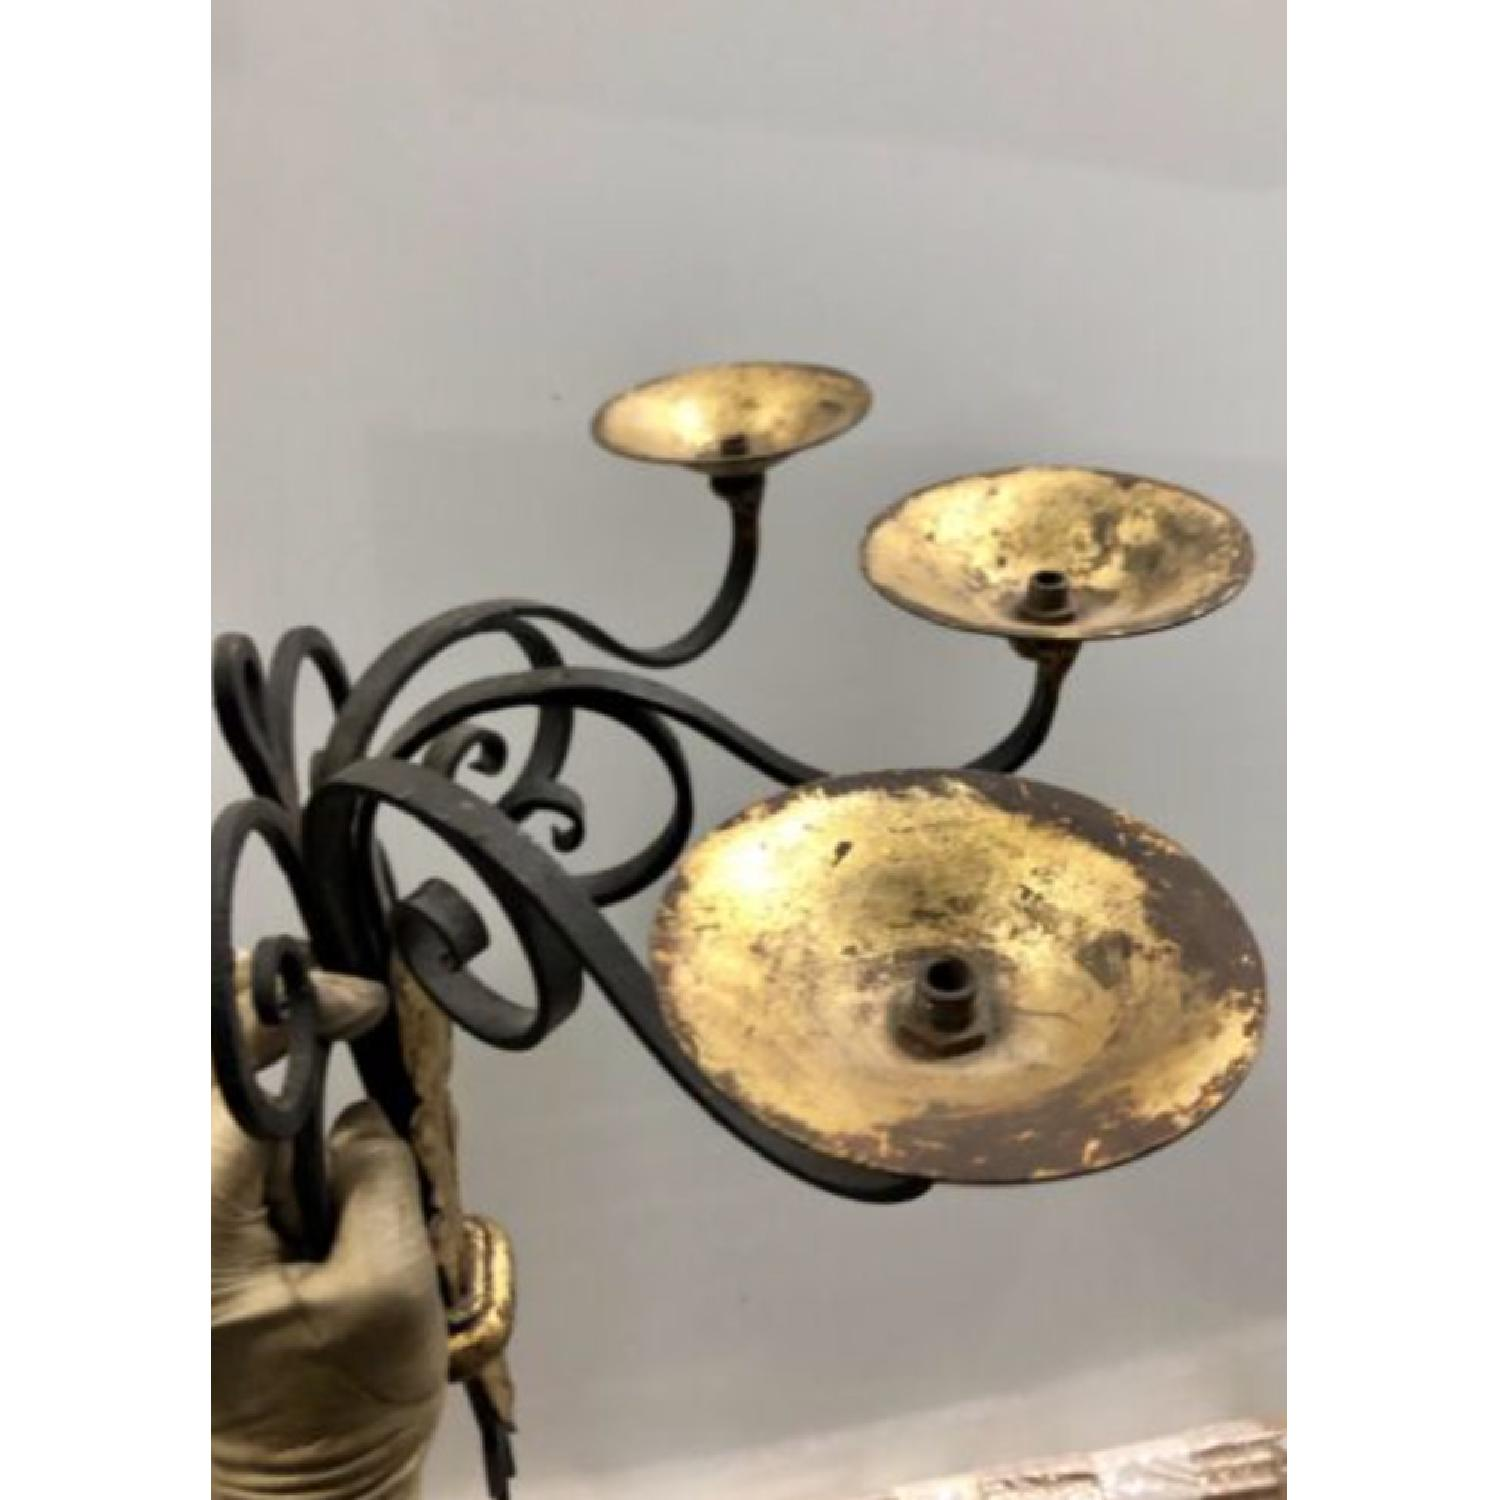 1940's French Black and Gold leaf Wrought iron Sconces - image-2